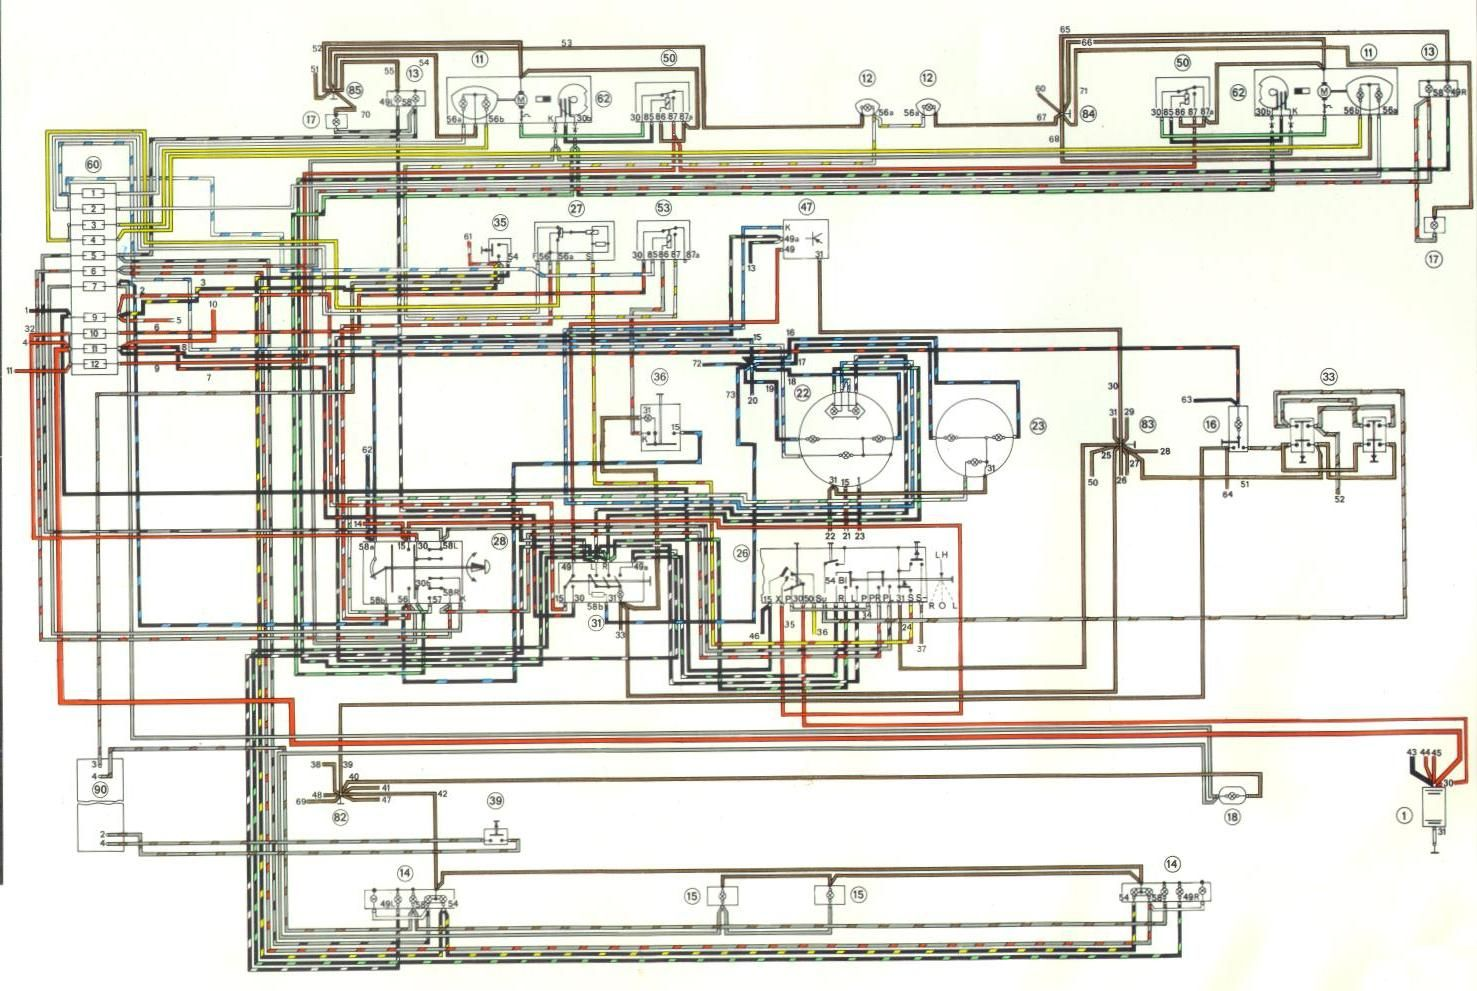 1973 Porsche 914 Wiring Diagram Starting Know About Wiring Diagram \u2022 74  Porsche 914 Wiring-Diagram Porsche 914 Wiring Diagram